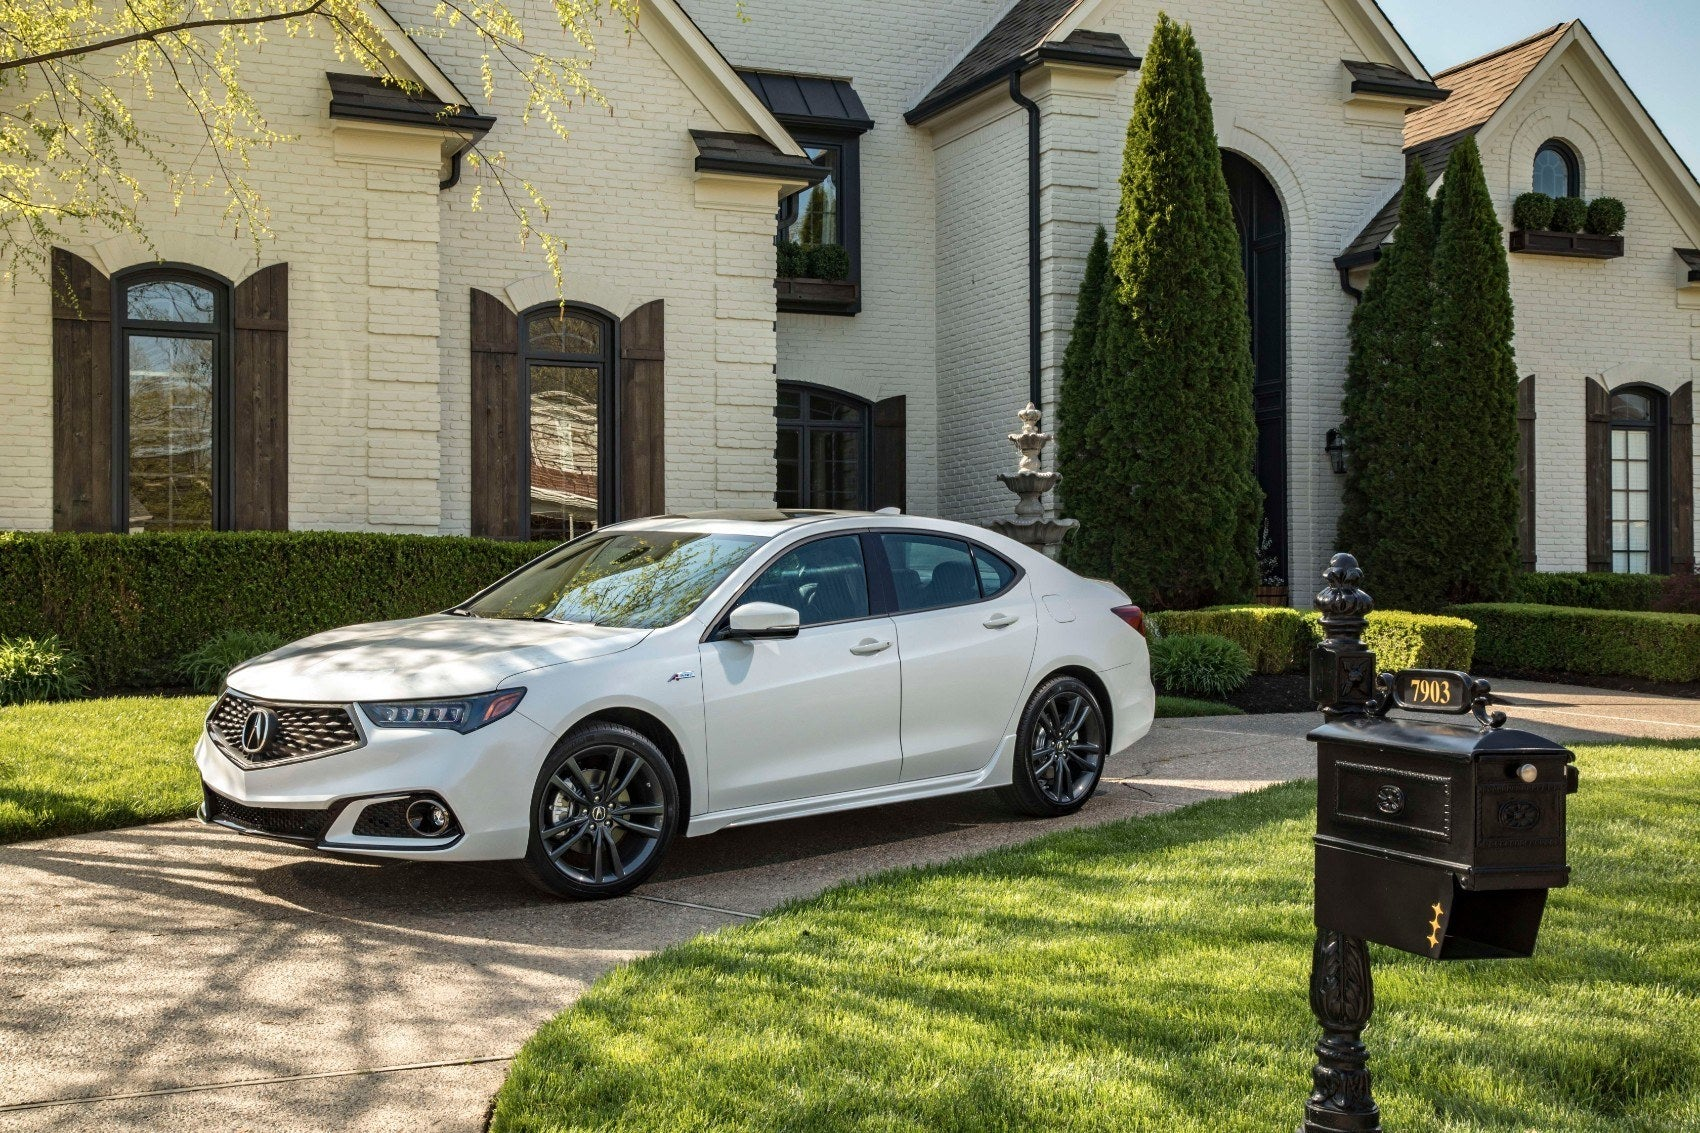 2020 Acura TLX: Letting Those Colors Fly!